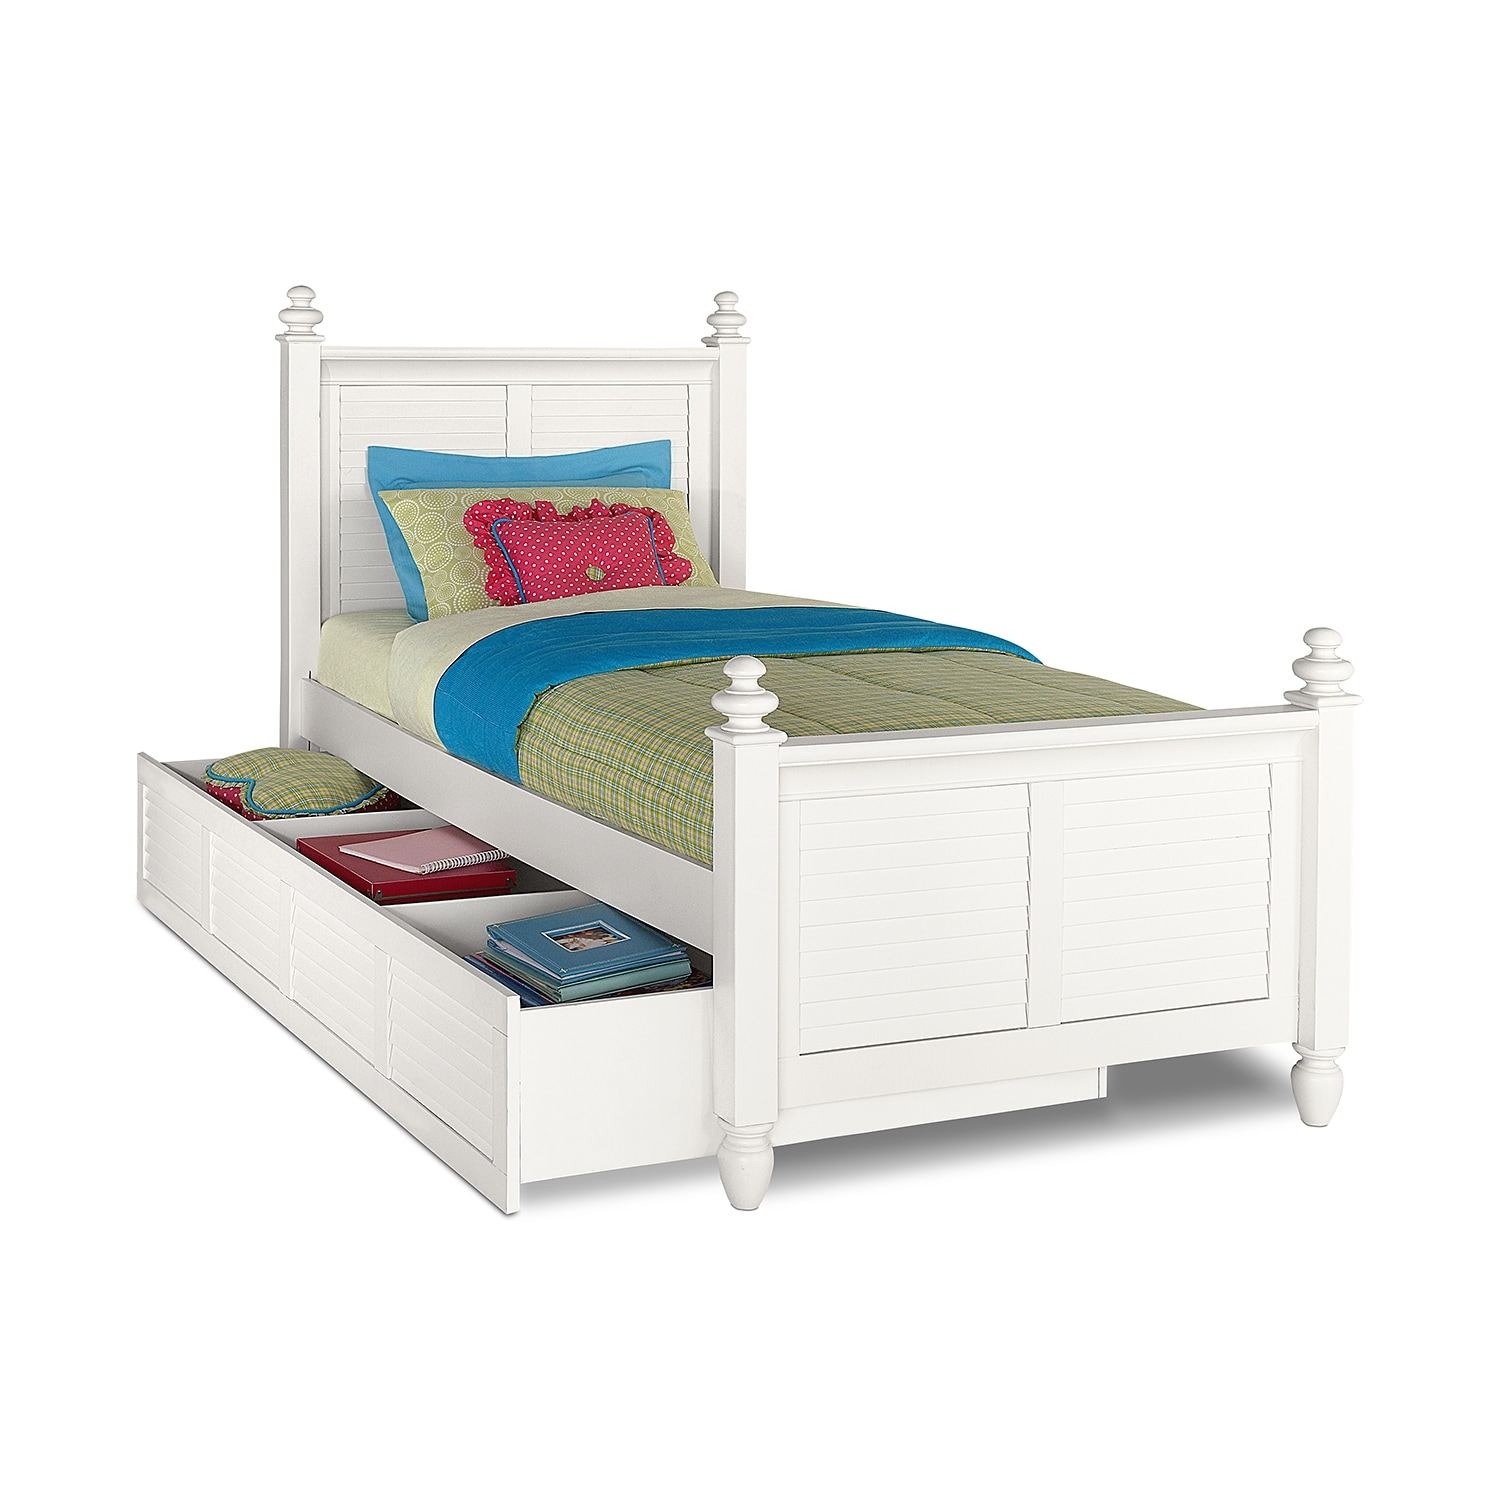 [Seaside White Twin Bed with Trundle]